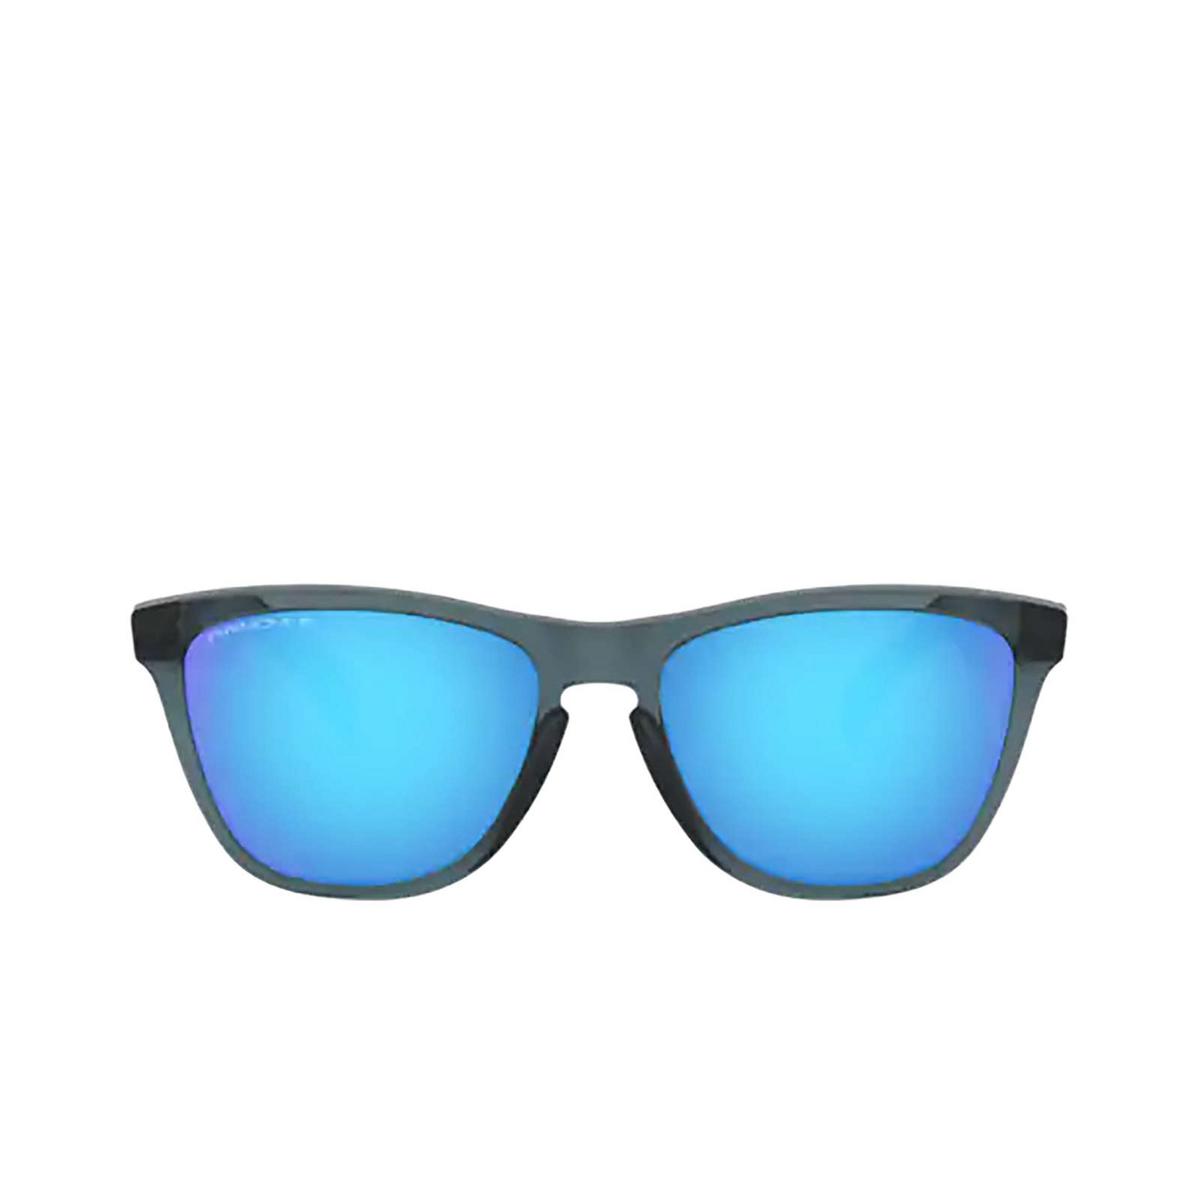 Oakley® Square Sunglasses: Frogskins OO9013 color Crystal Black 9013F6 - front view.